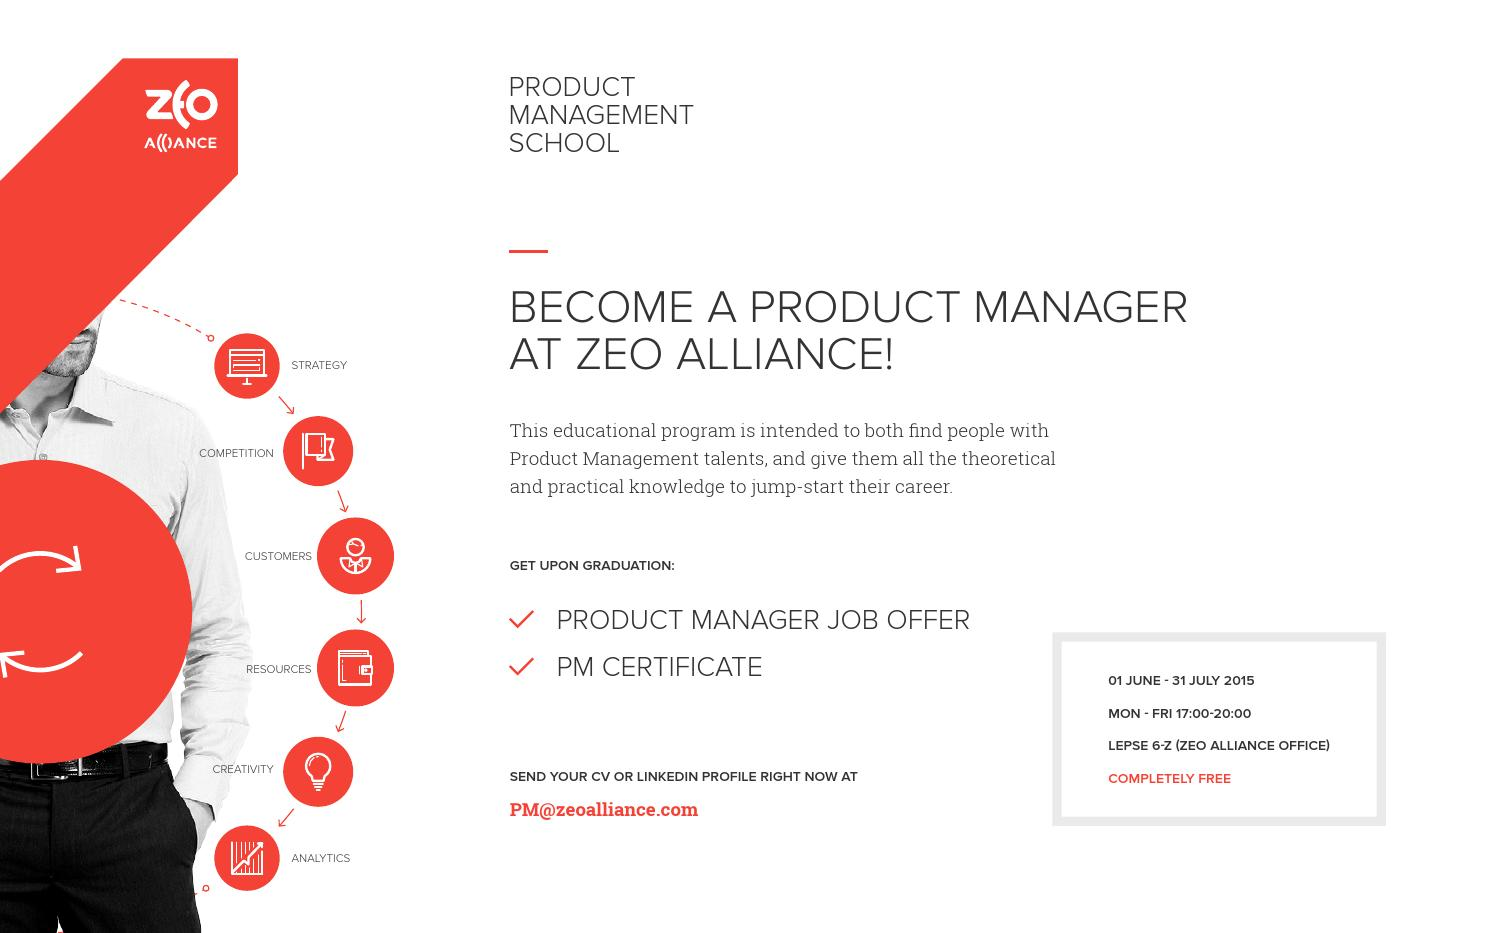 product management school 2015 by zeo alliance